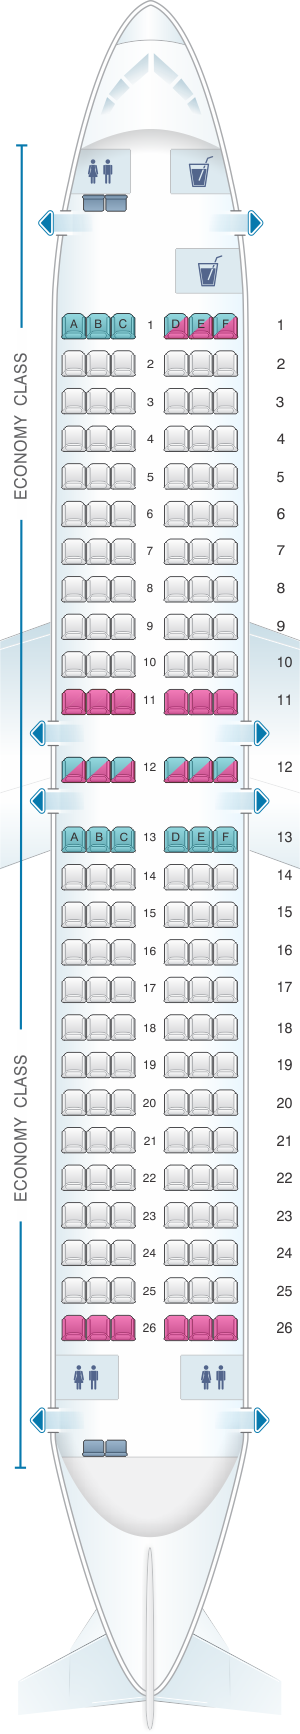 Seat map for Air North - Yukon's Airline Boeing B737 400